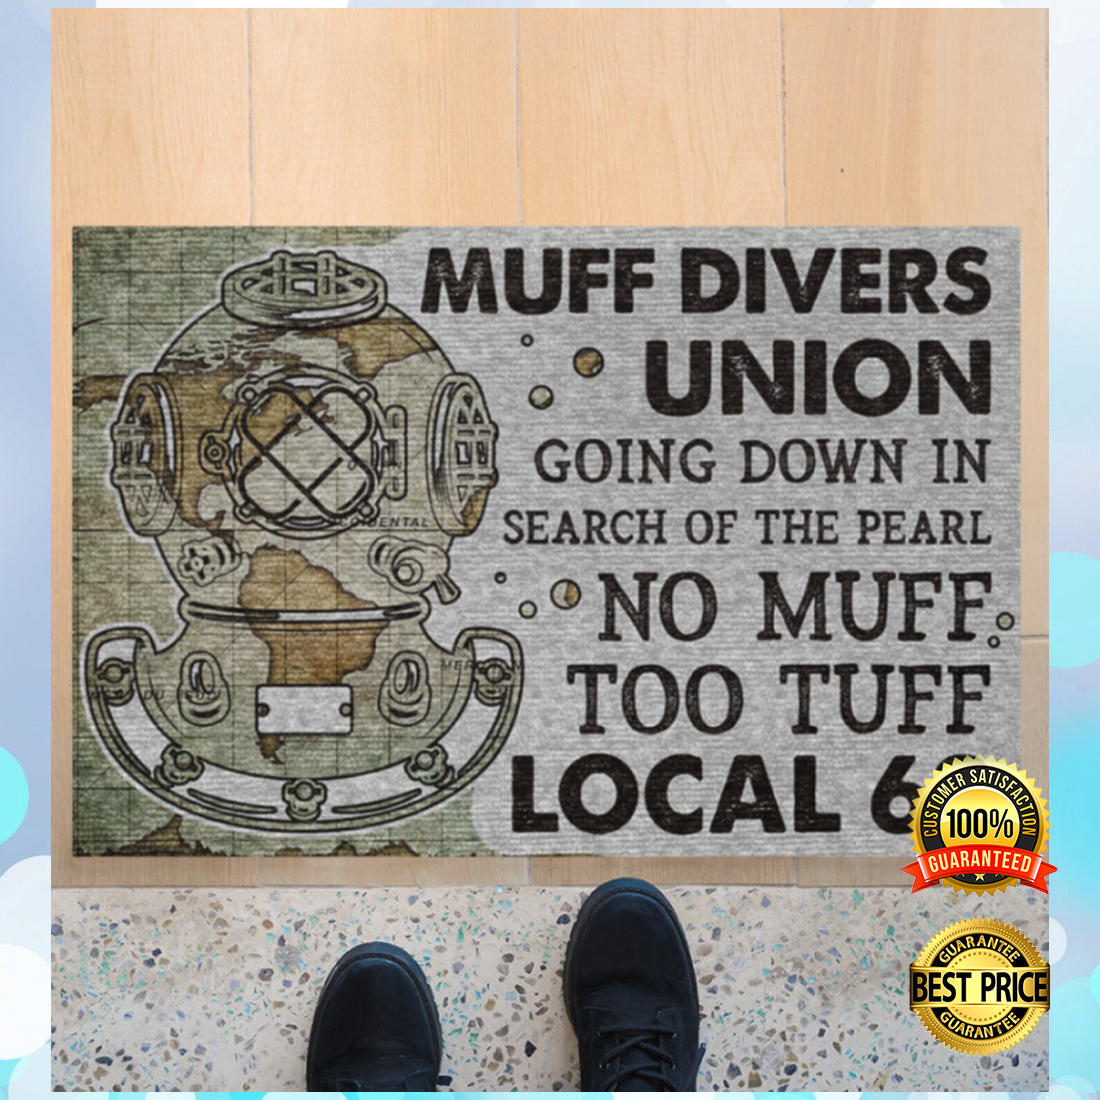 MUFF DIVERS UNION GOING DOWN IN SEARCH OF THE PEARL DOORMAT 7